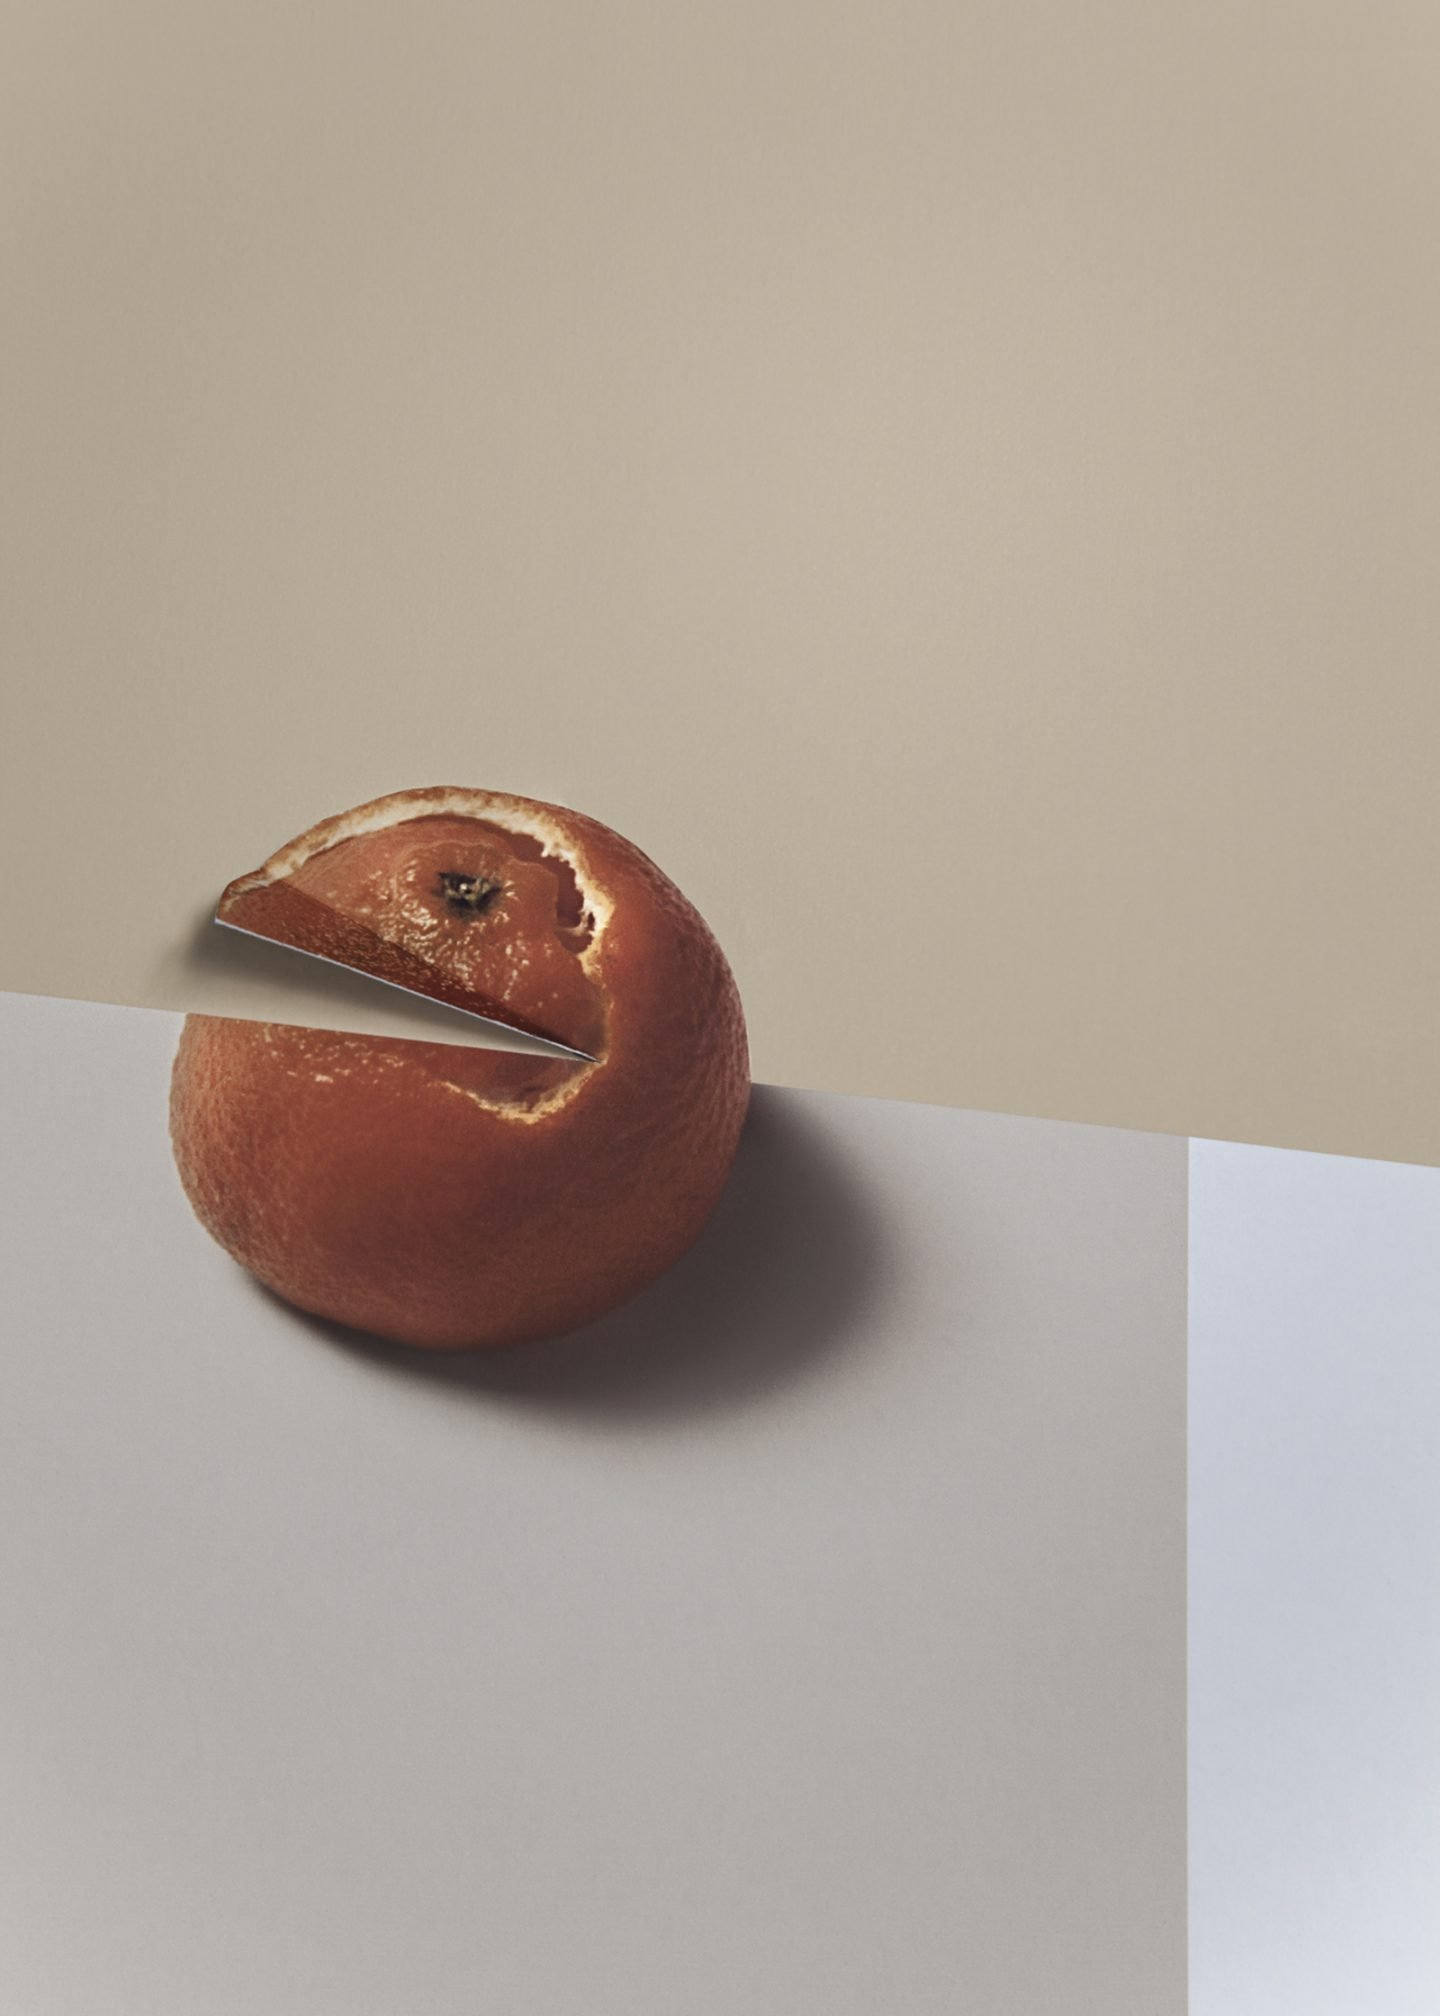 iGNANT-Photography-Delphine-Burton-Encouble-003